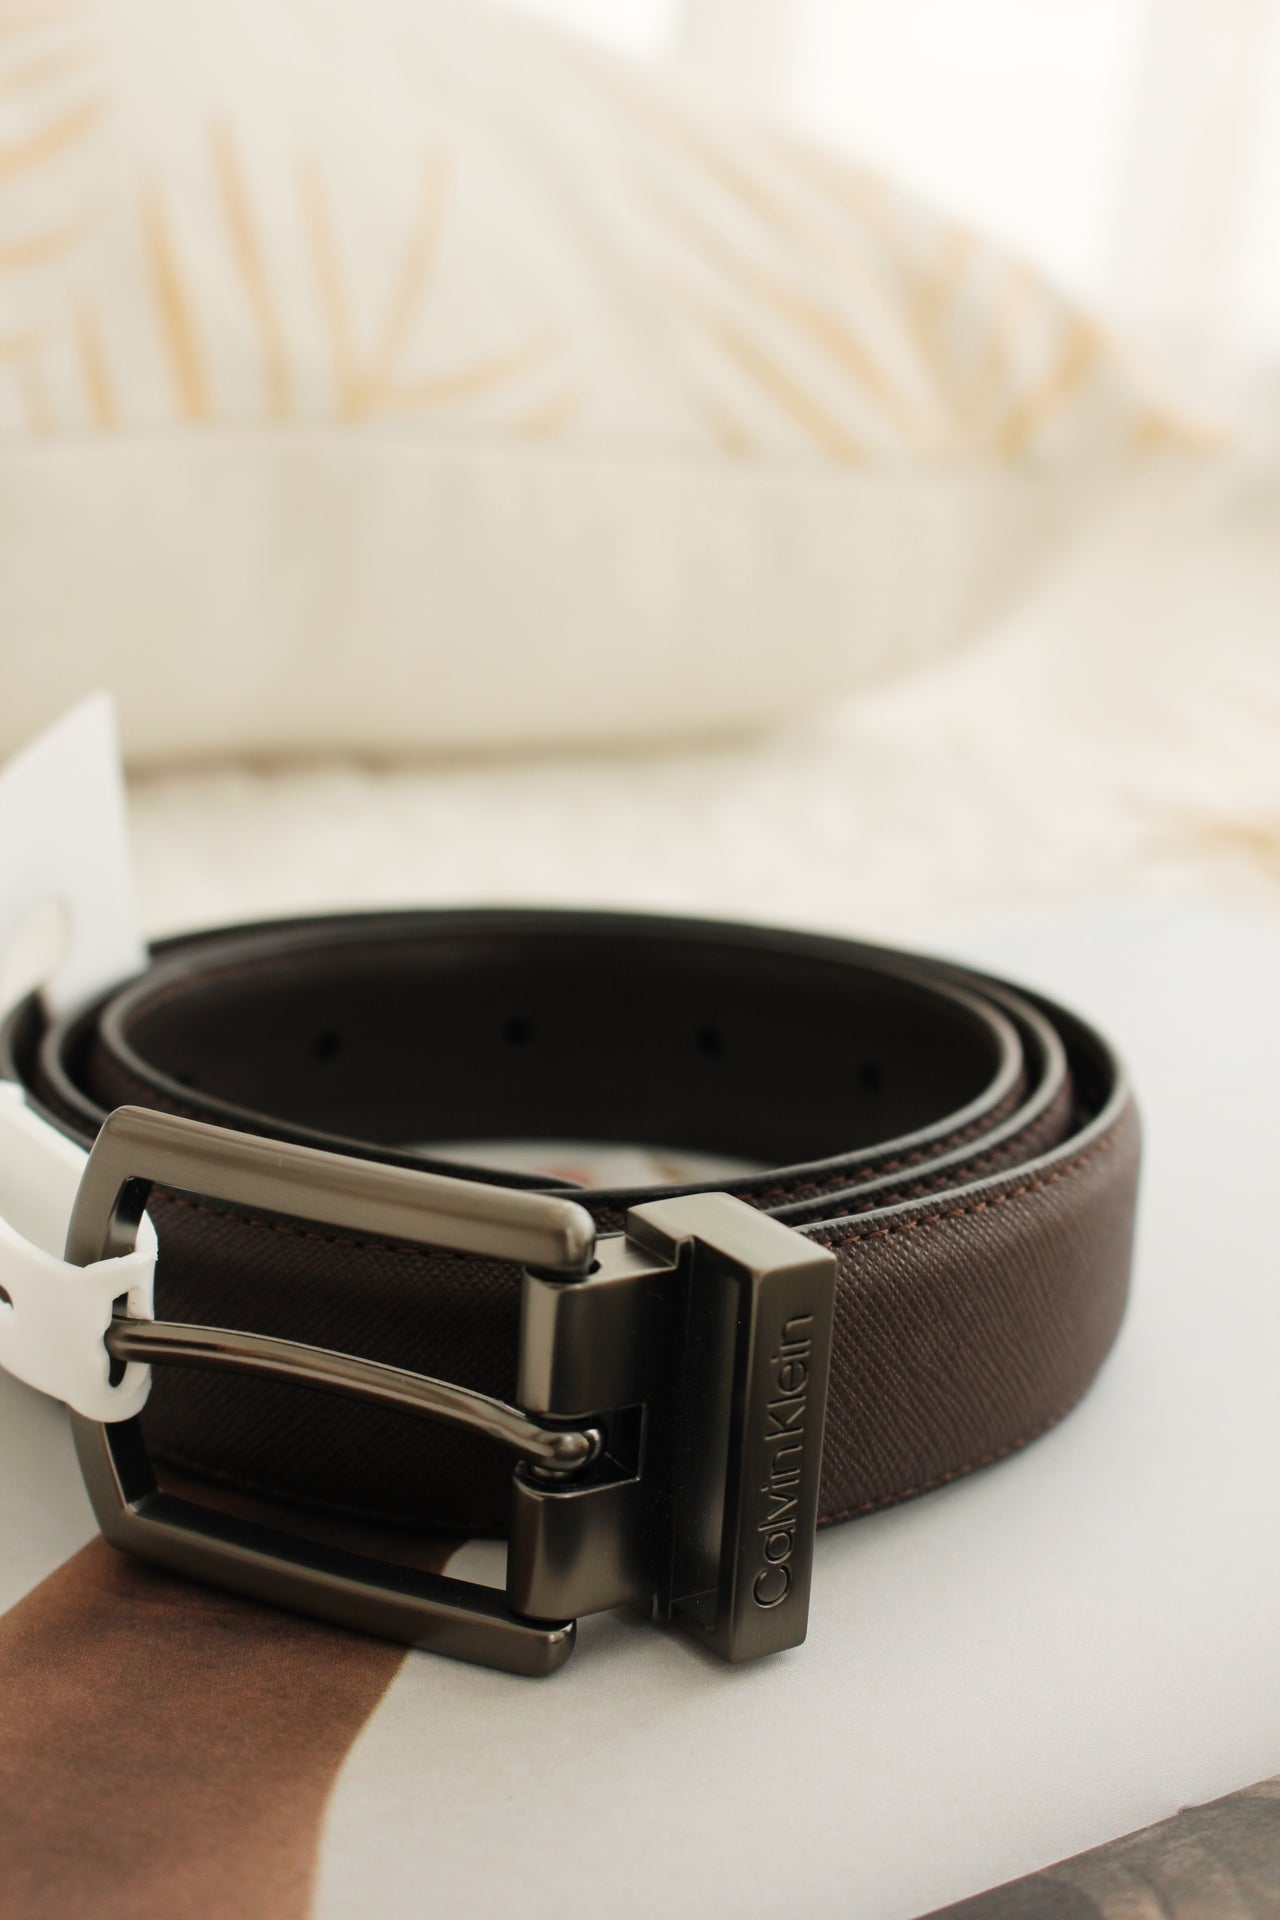 CALVIN KLEIN 30MM SAFFIANO BELT - LovelyMadness Clothing Online Fashion Malaysia